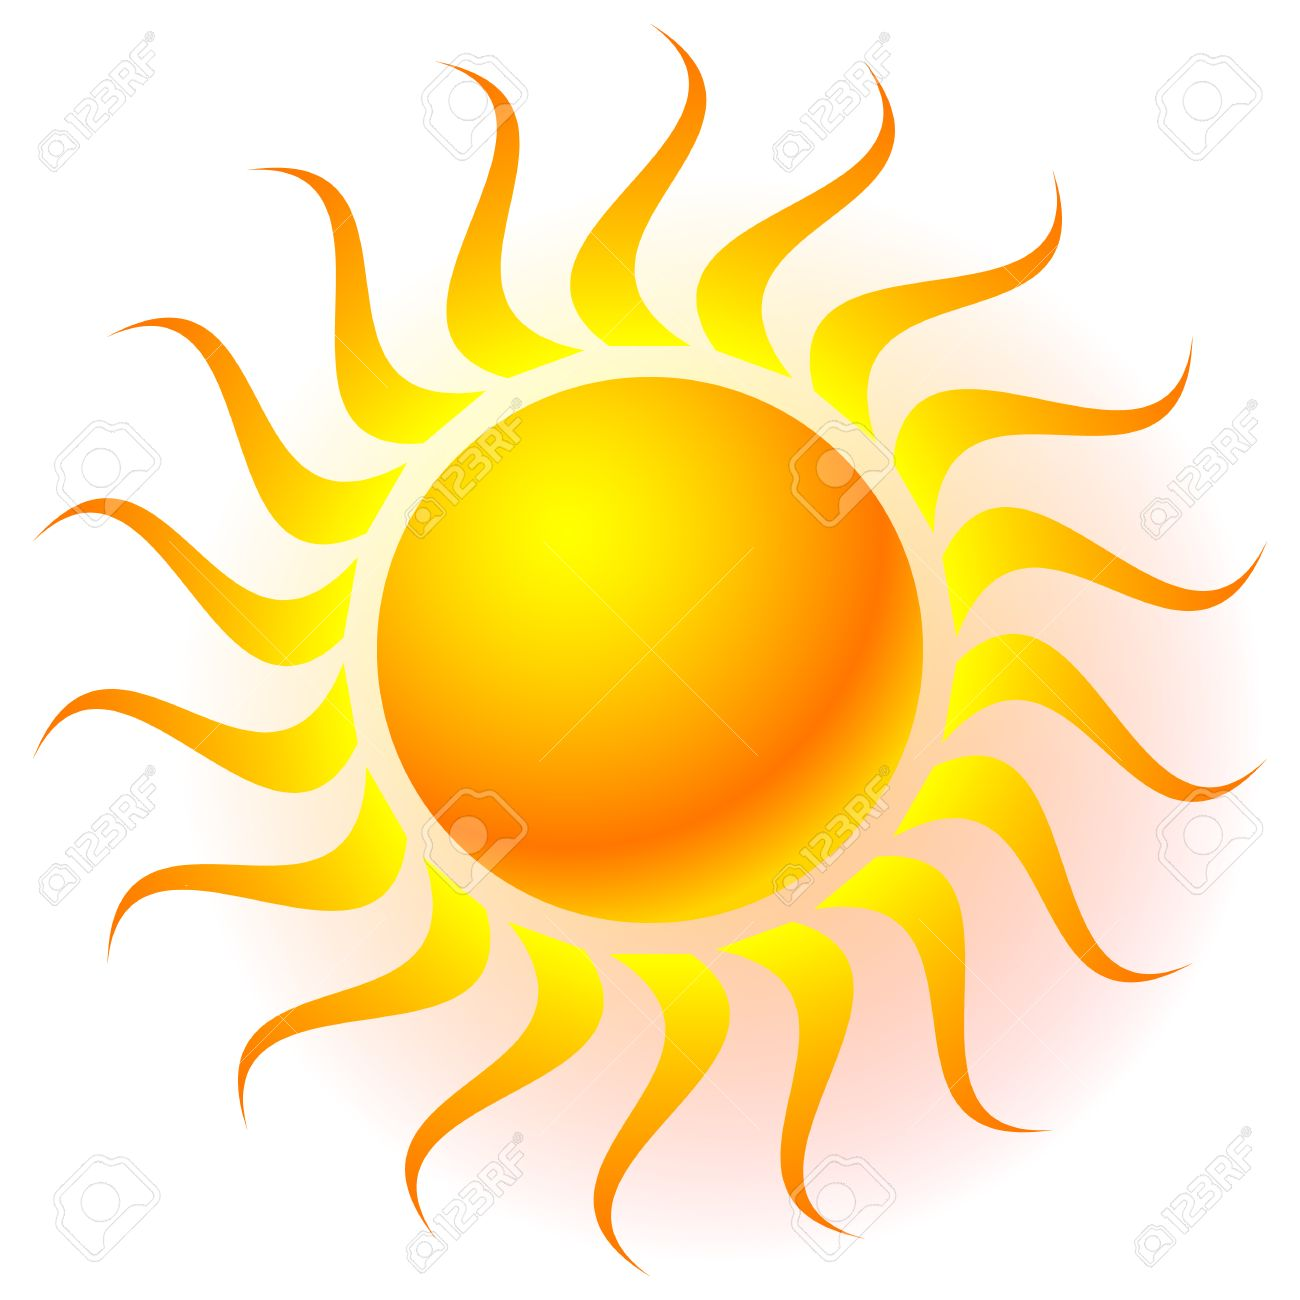 hight resolution of sun clip art with transparent glow effect sun shine weather tanning